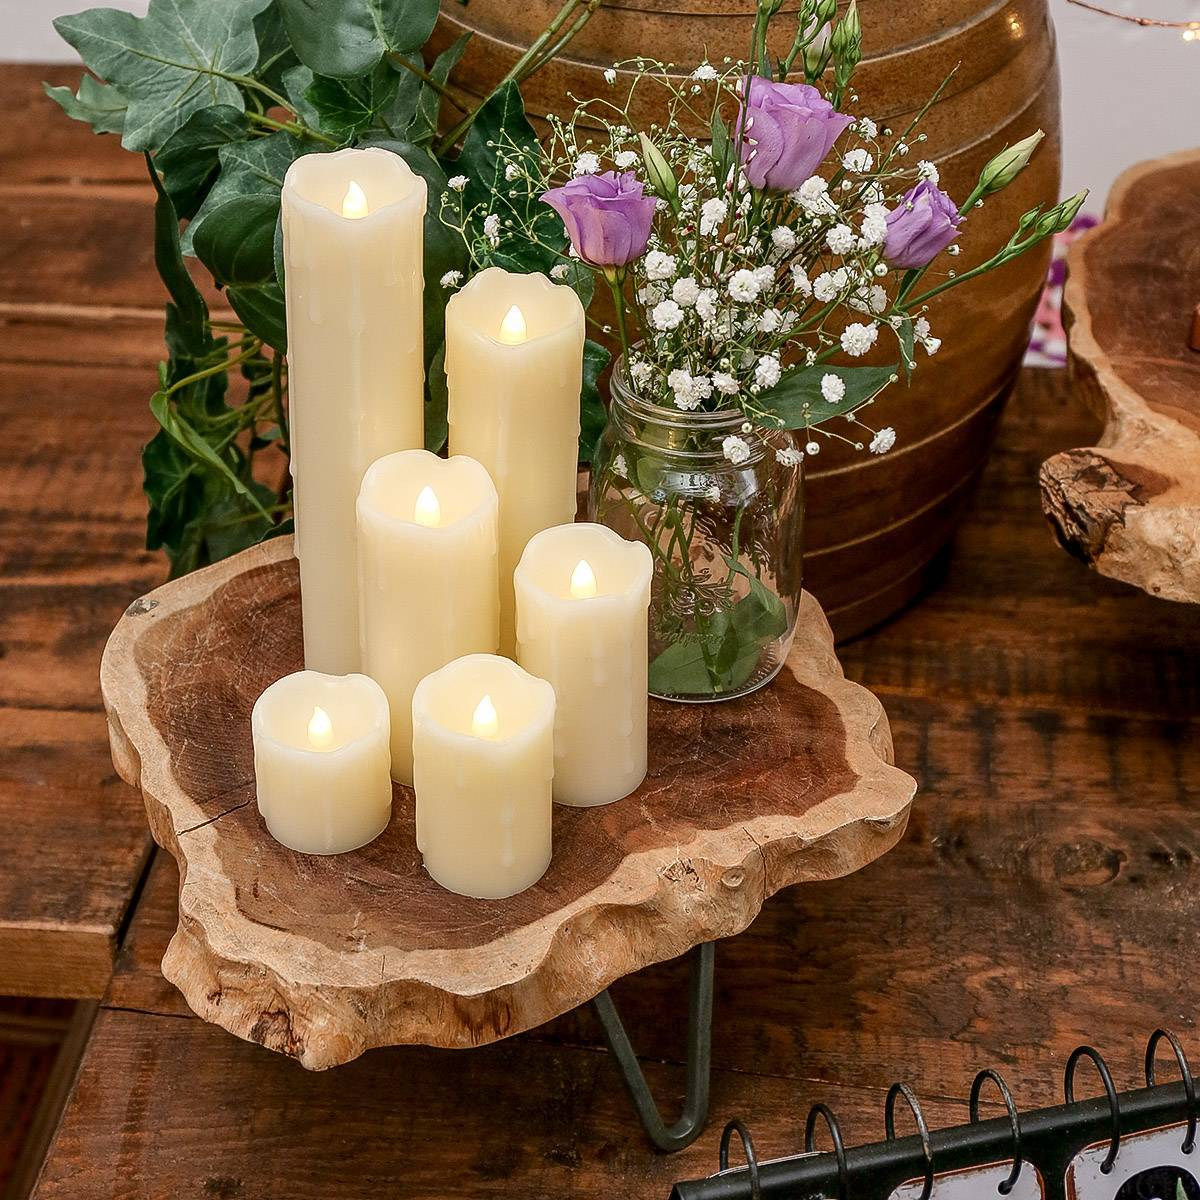 A set of six variously sized cream battery powered LED candles, styled as wedding decoration with flowers